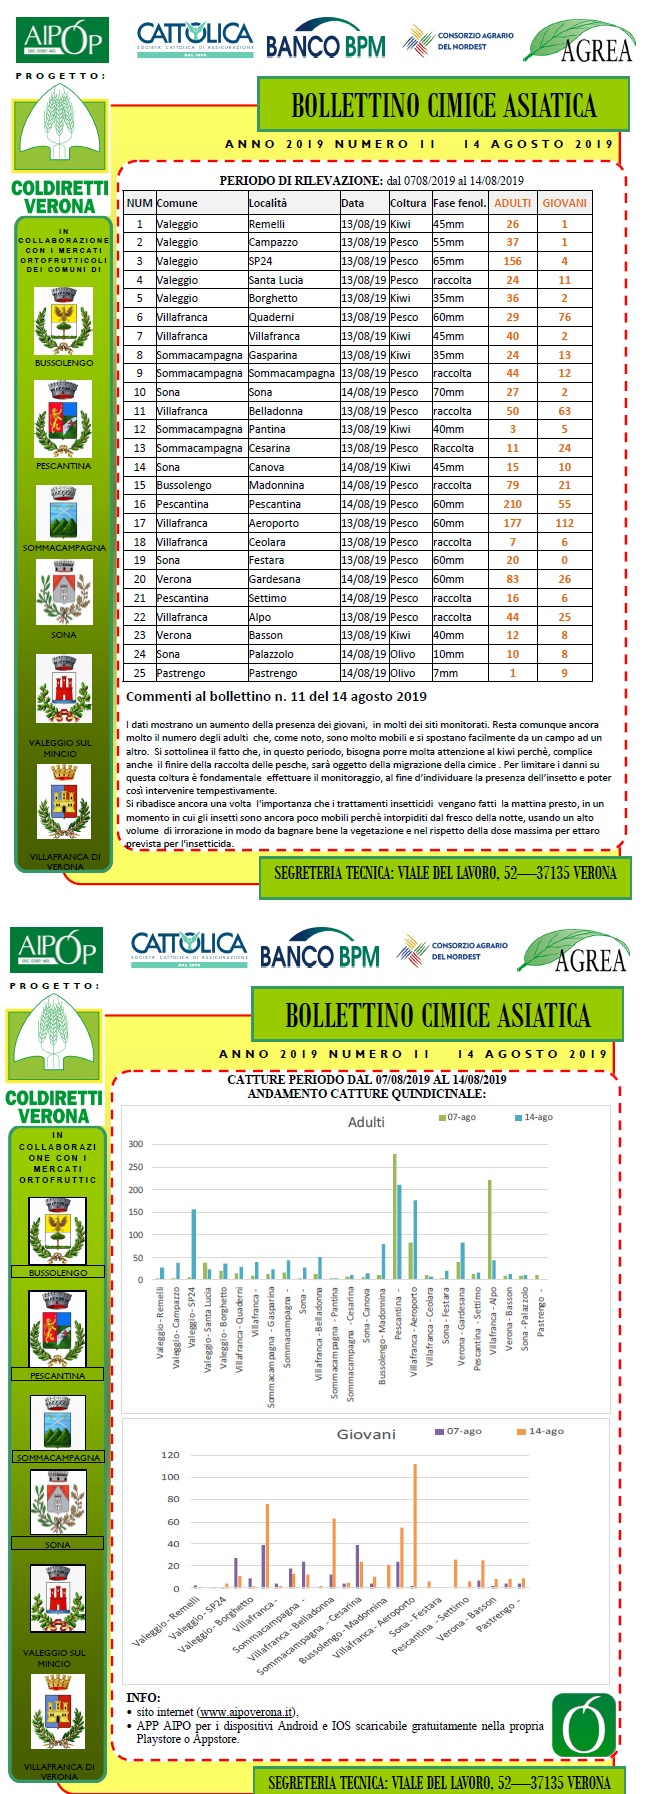 BOLLETTINO CIMICE ASIATICA N. 11 DEL 14/08/2019